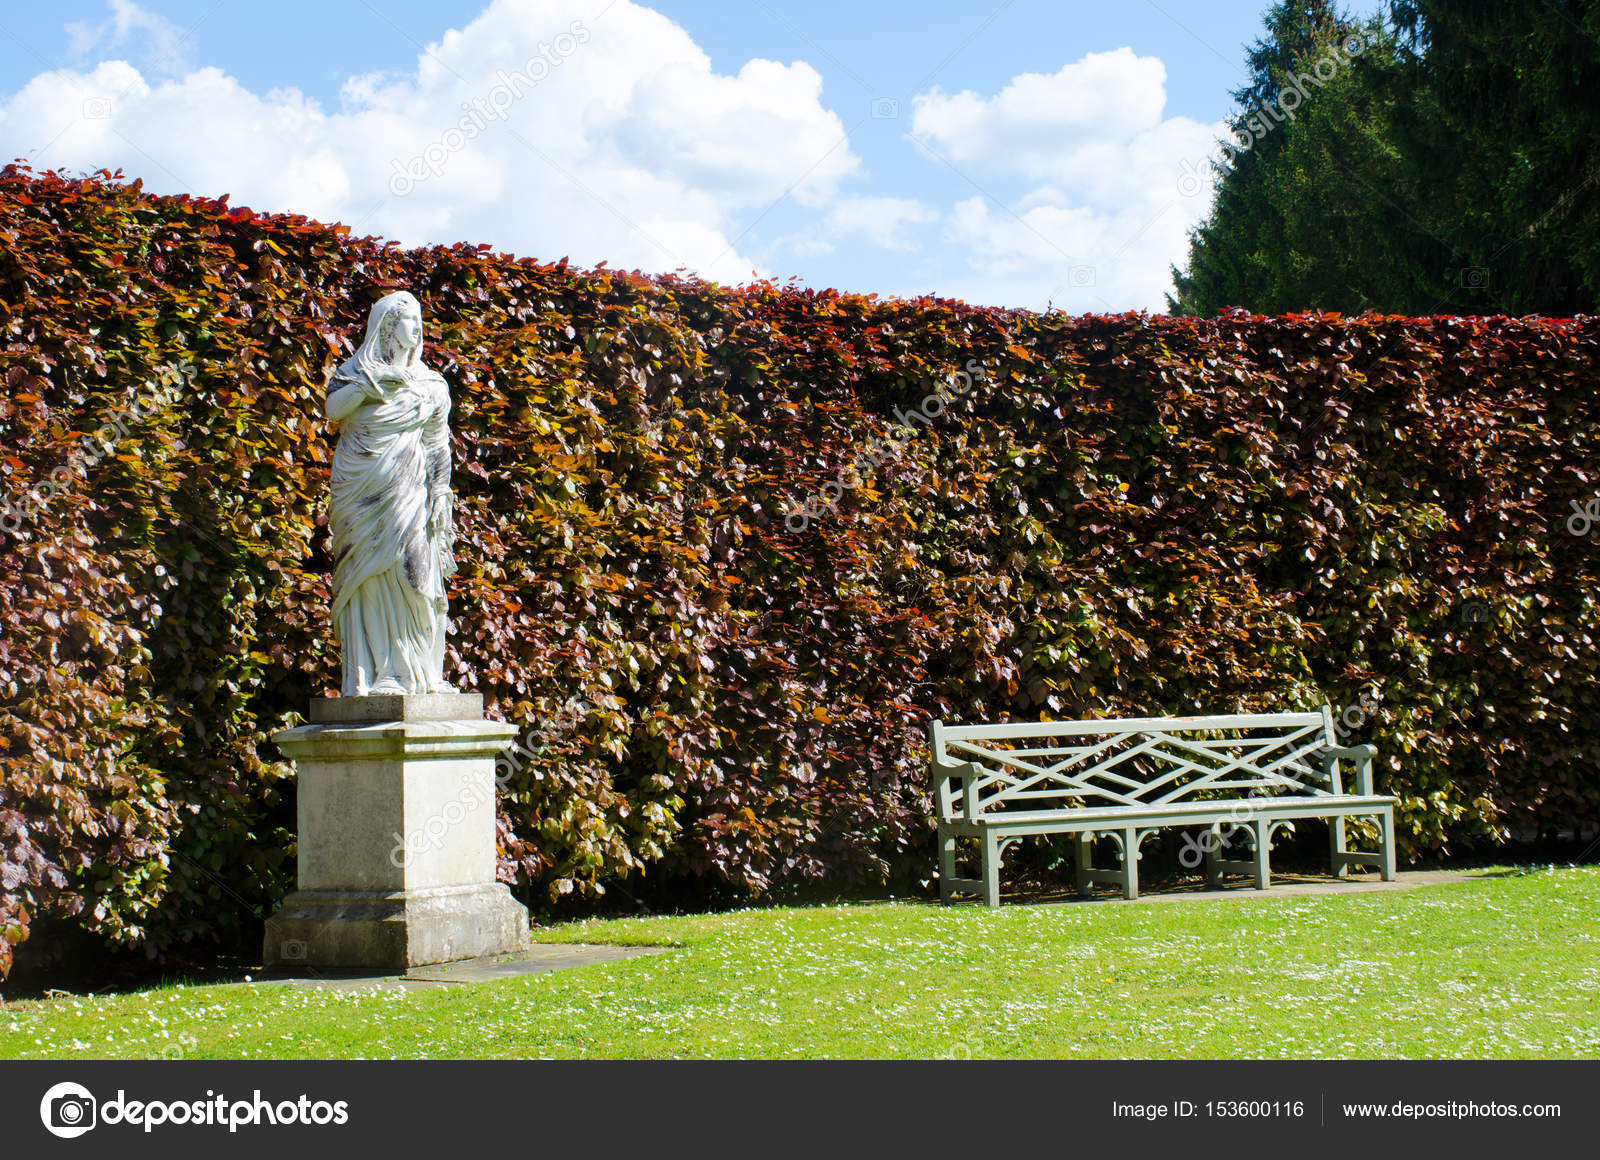 Statue with Bench in Formal English Country Garden — Stock Photo ...